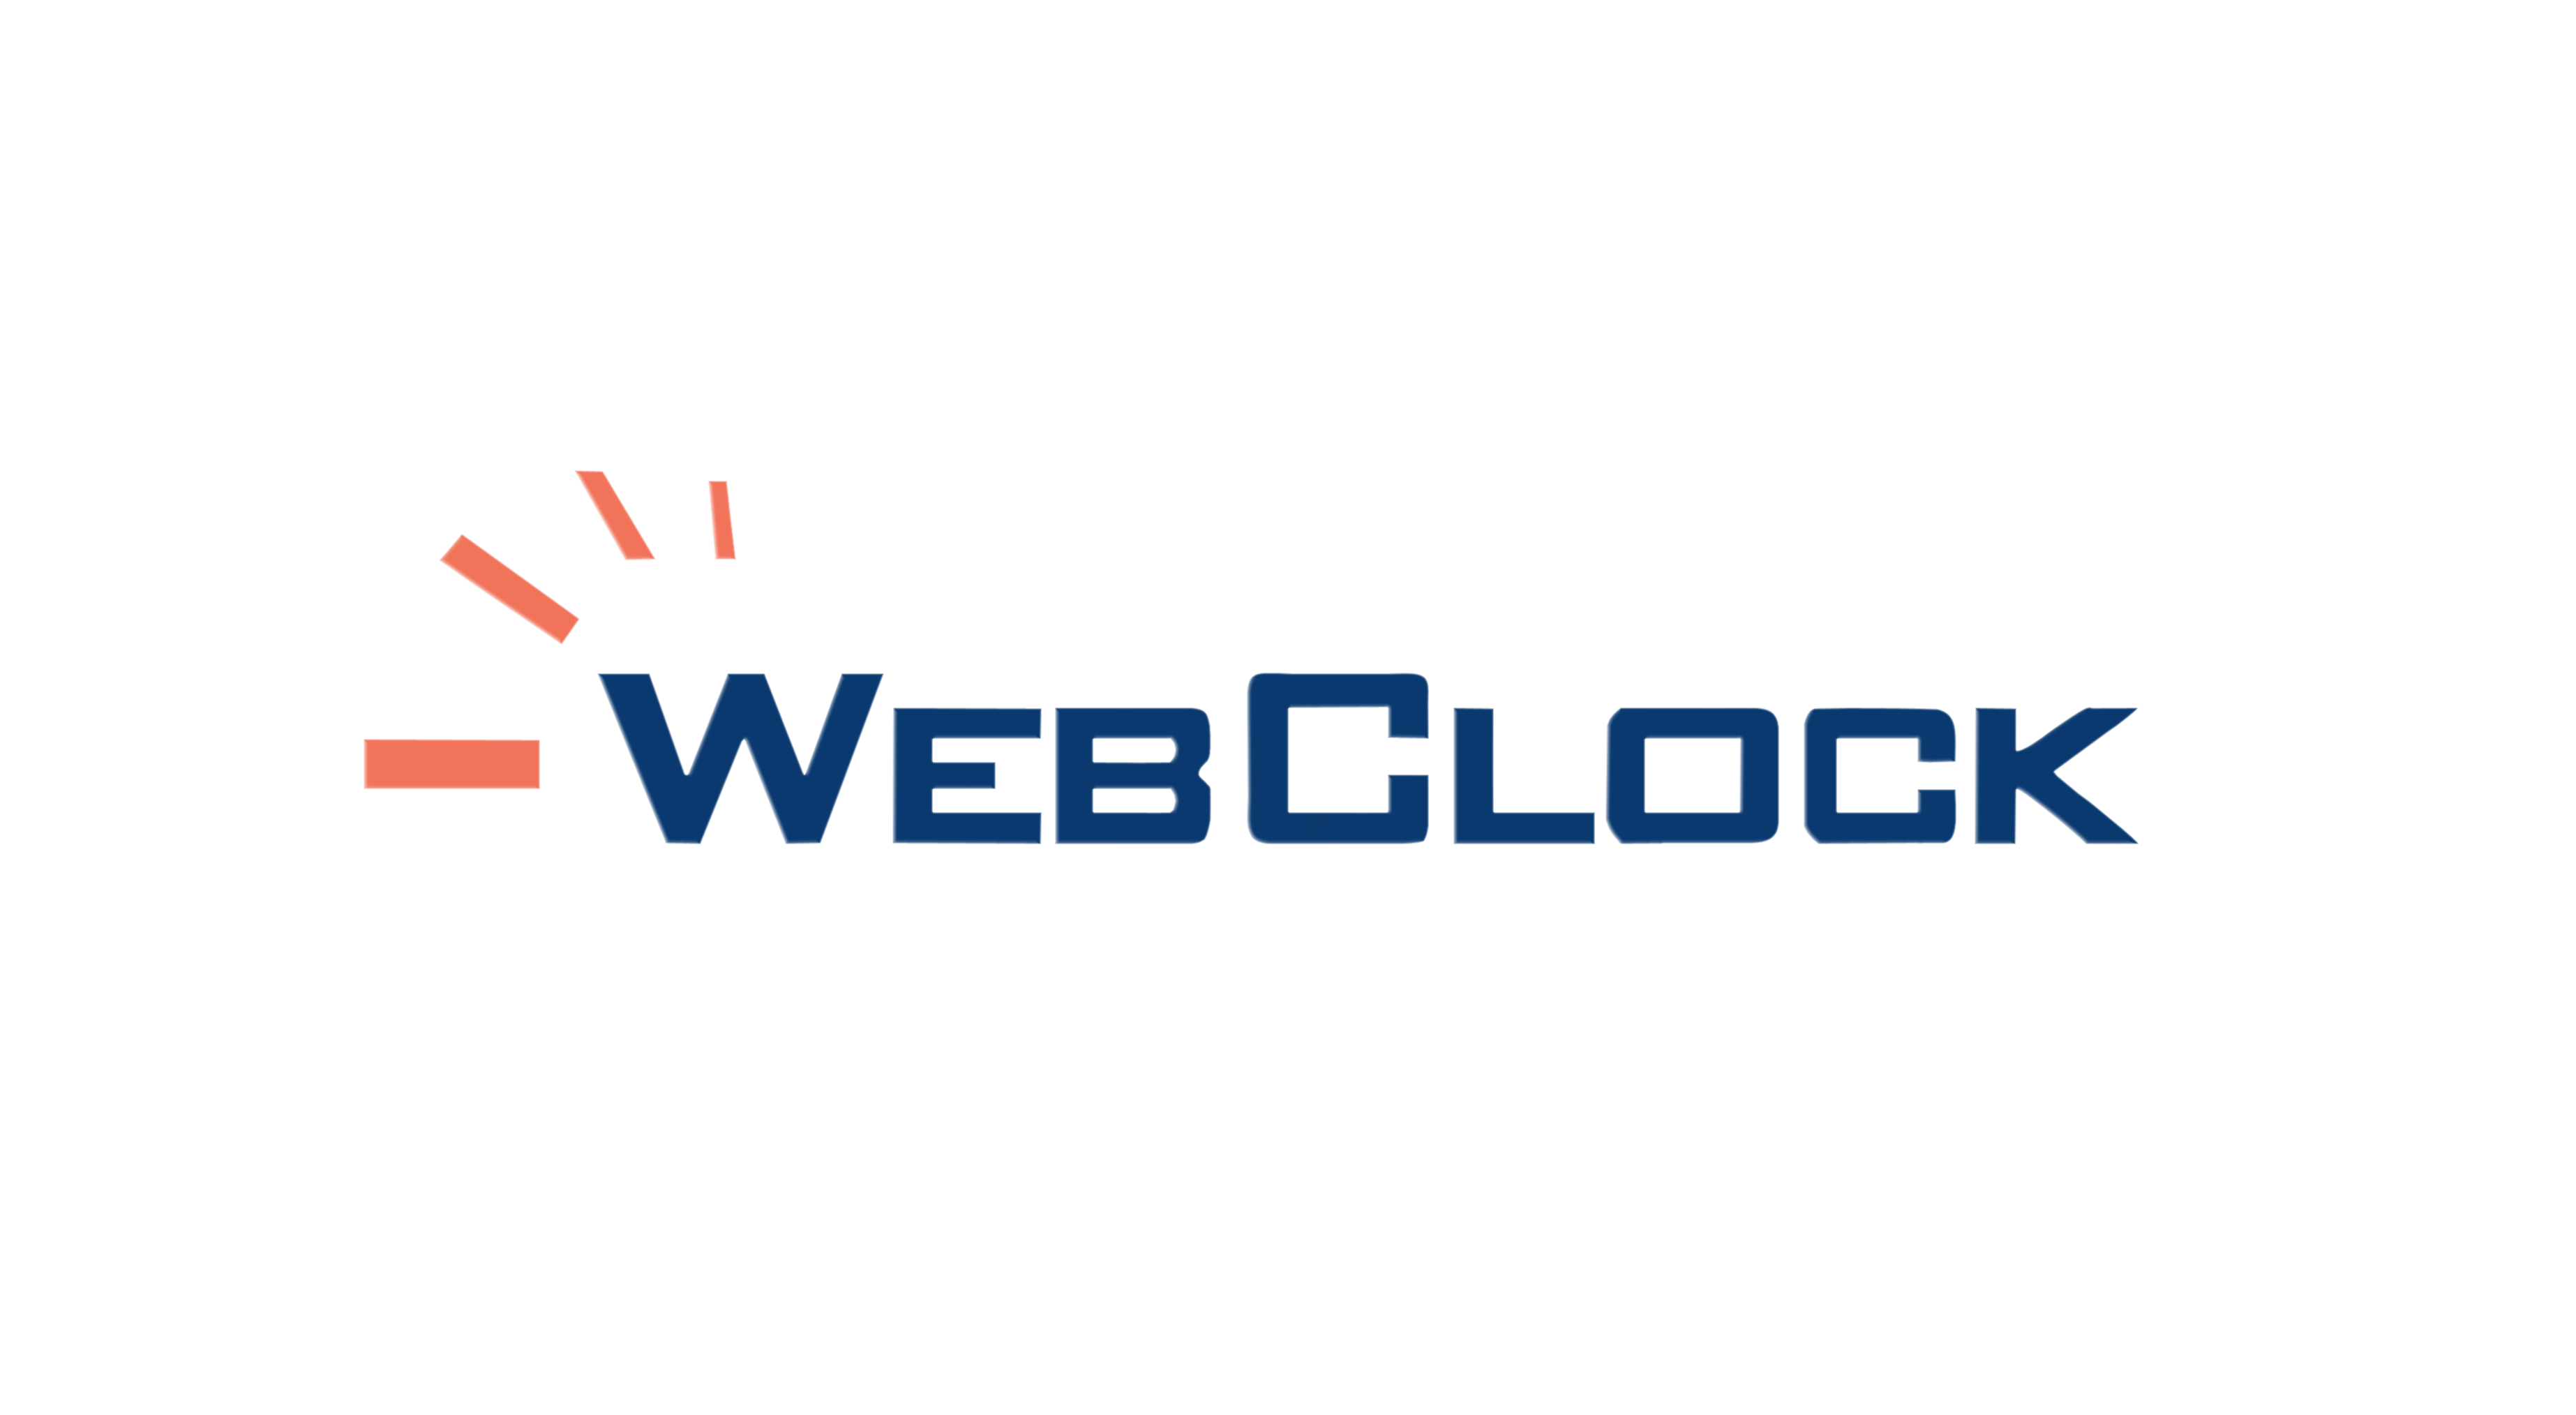 ITCS WebClock